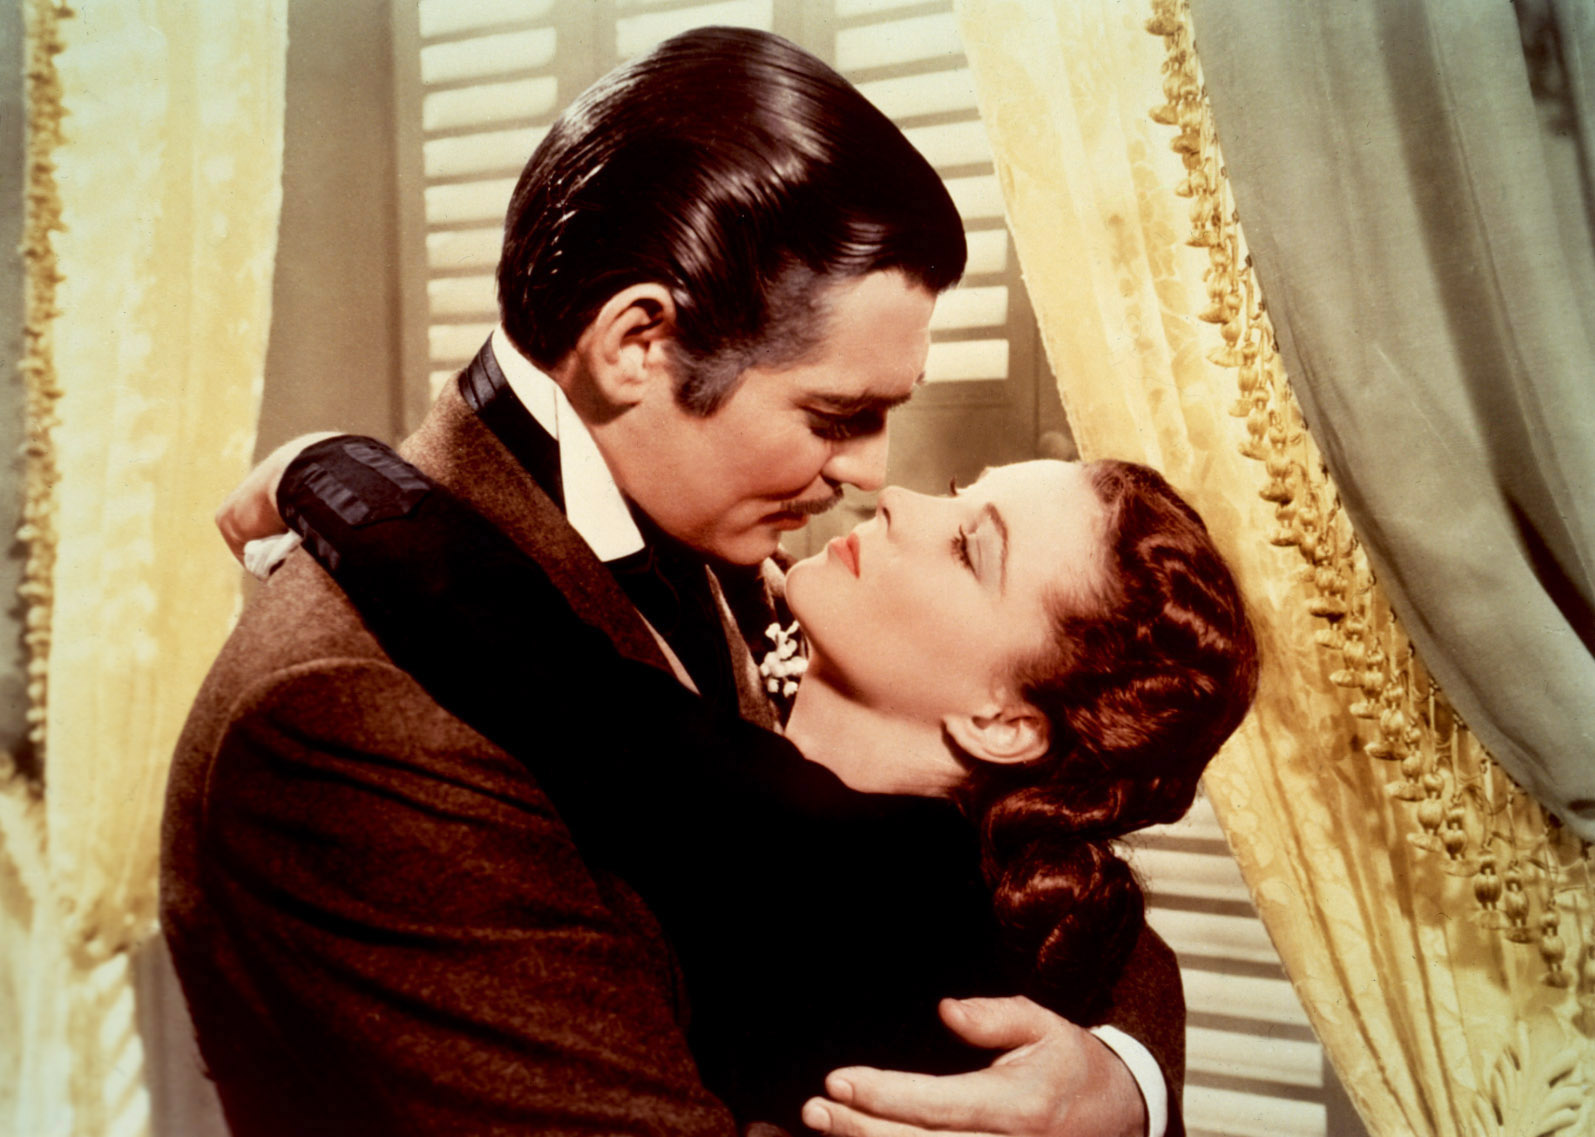 Clark Gable as Rhett Butler embracing Vivien Leigh as Scarlet O'Hara in Gone with the Wind movieloversreviews.filminspector.com